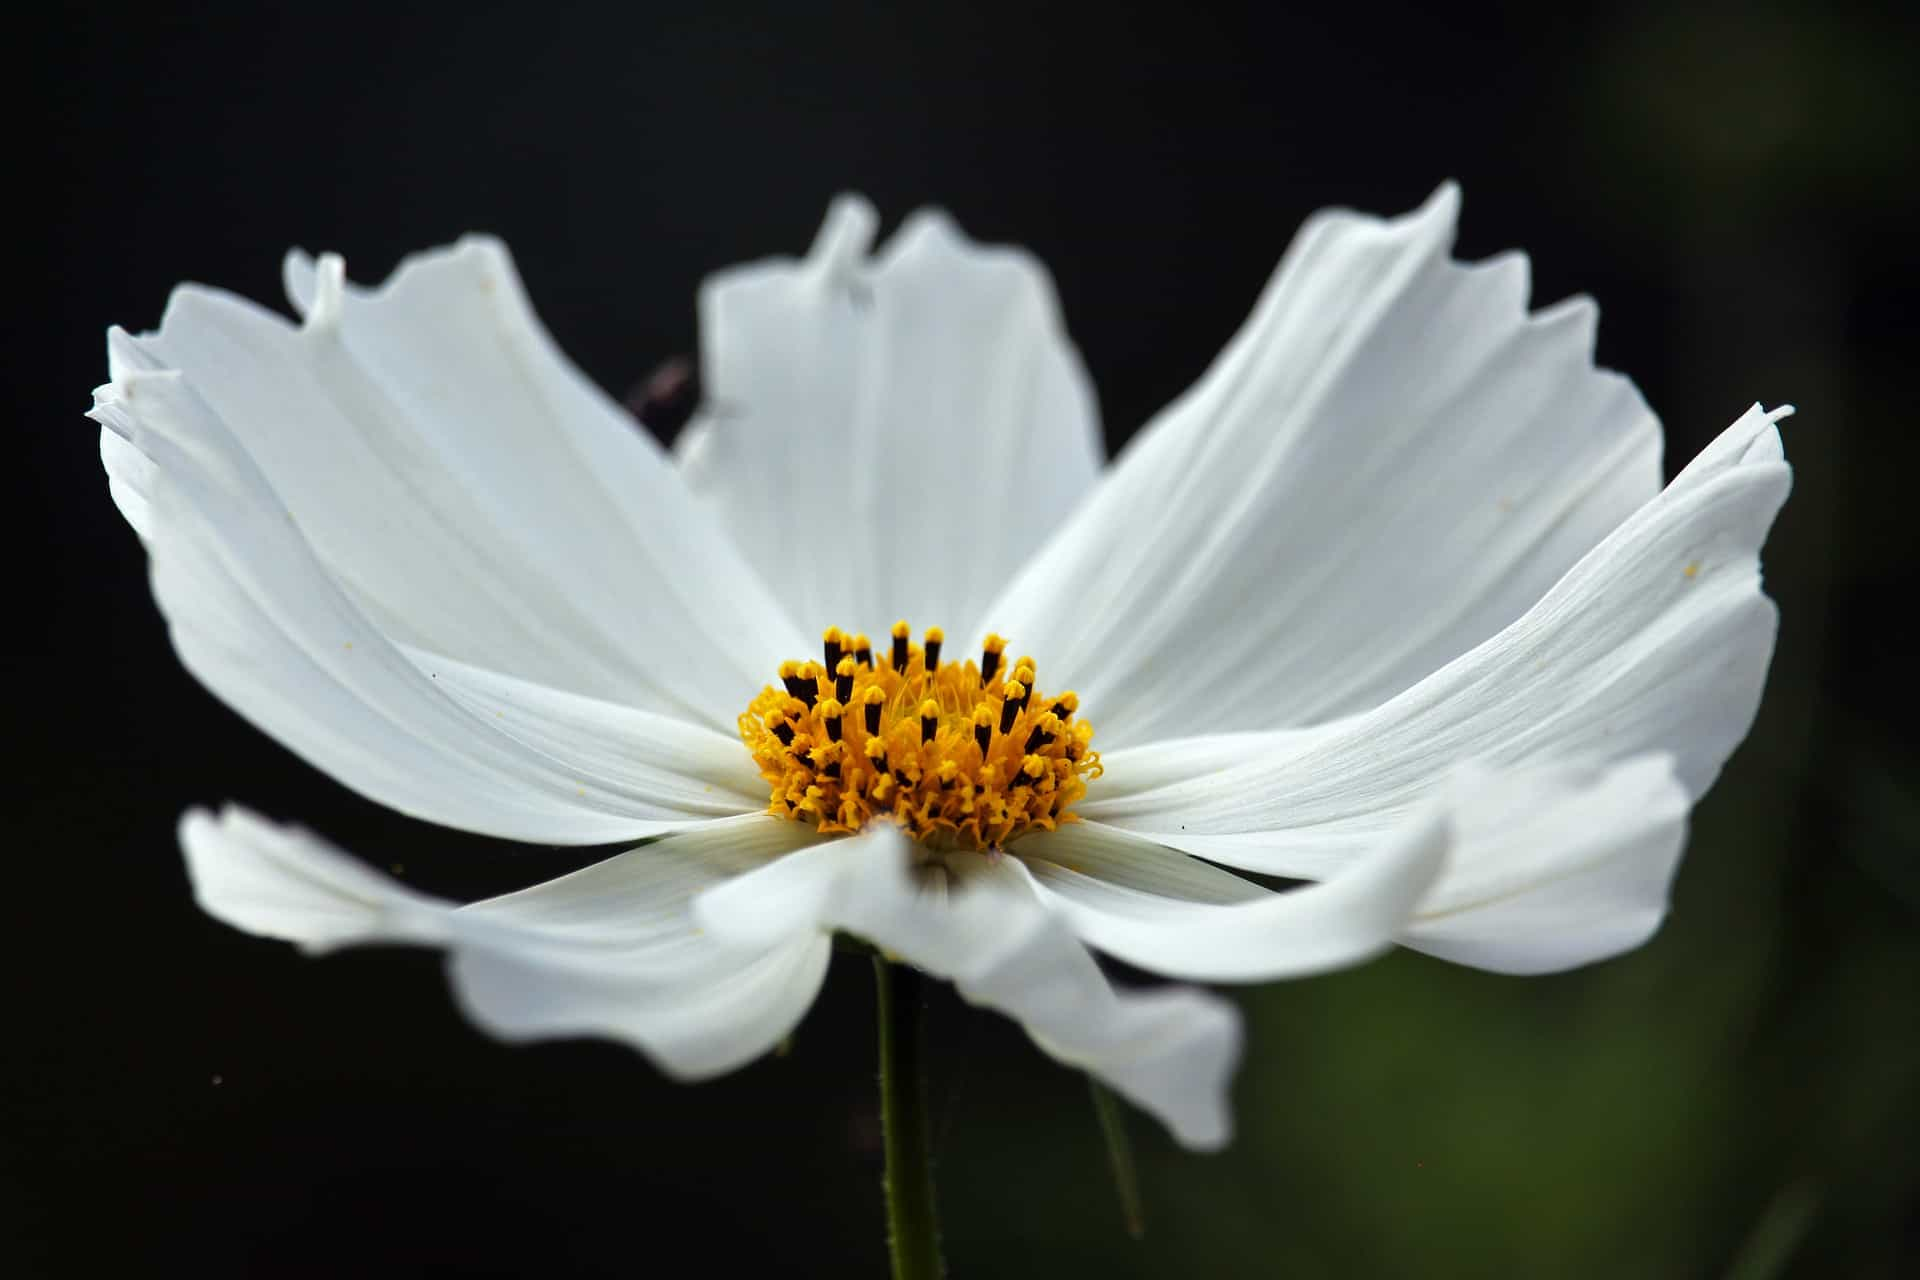 Know About The Most Popular Flowers In the World